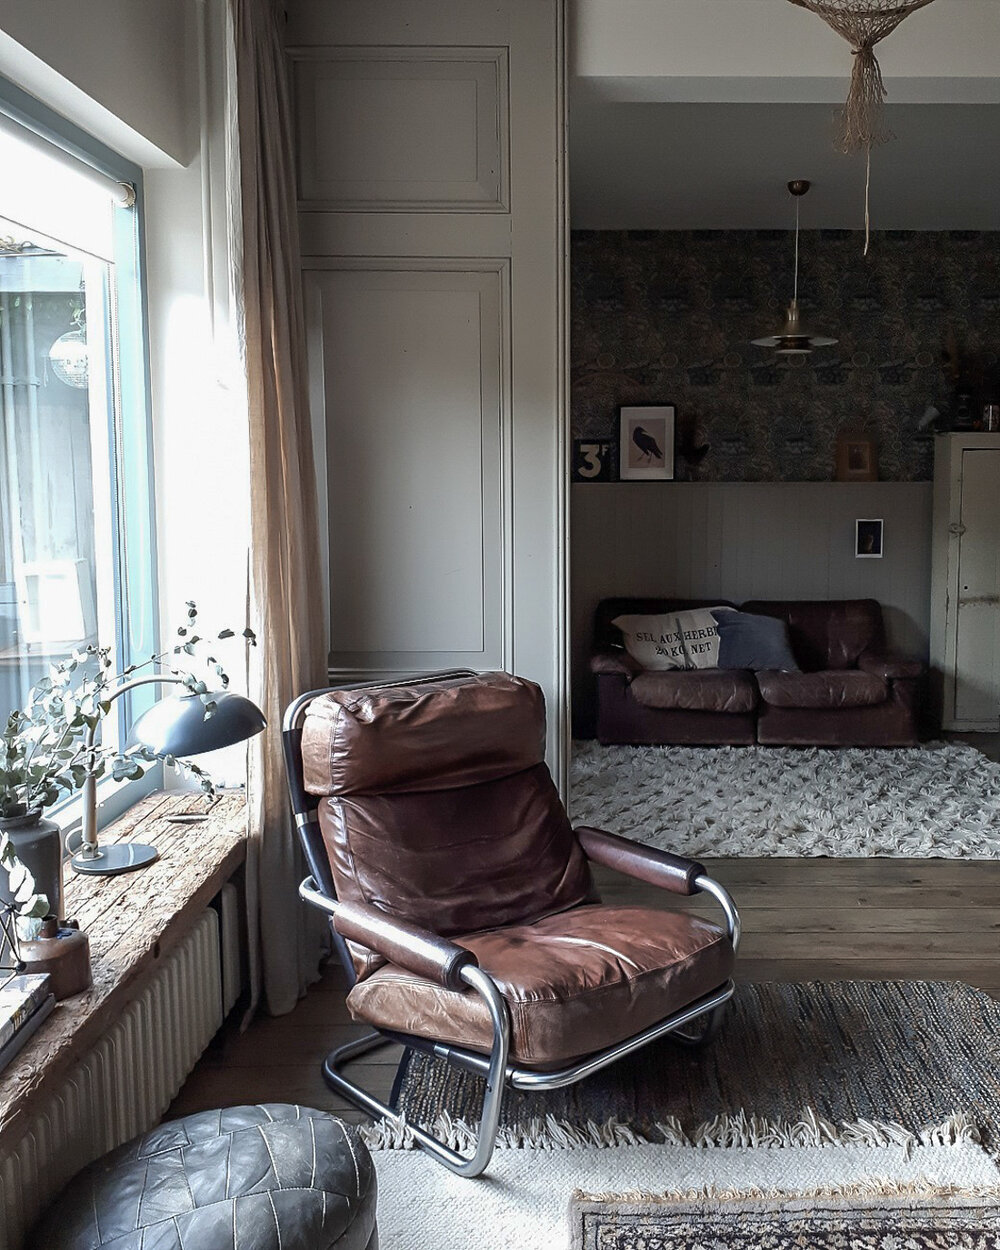 Tour This Relaxing, Soulful Home in The Netherlands